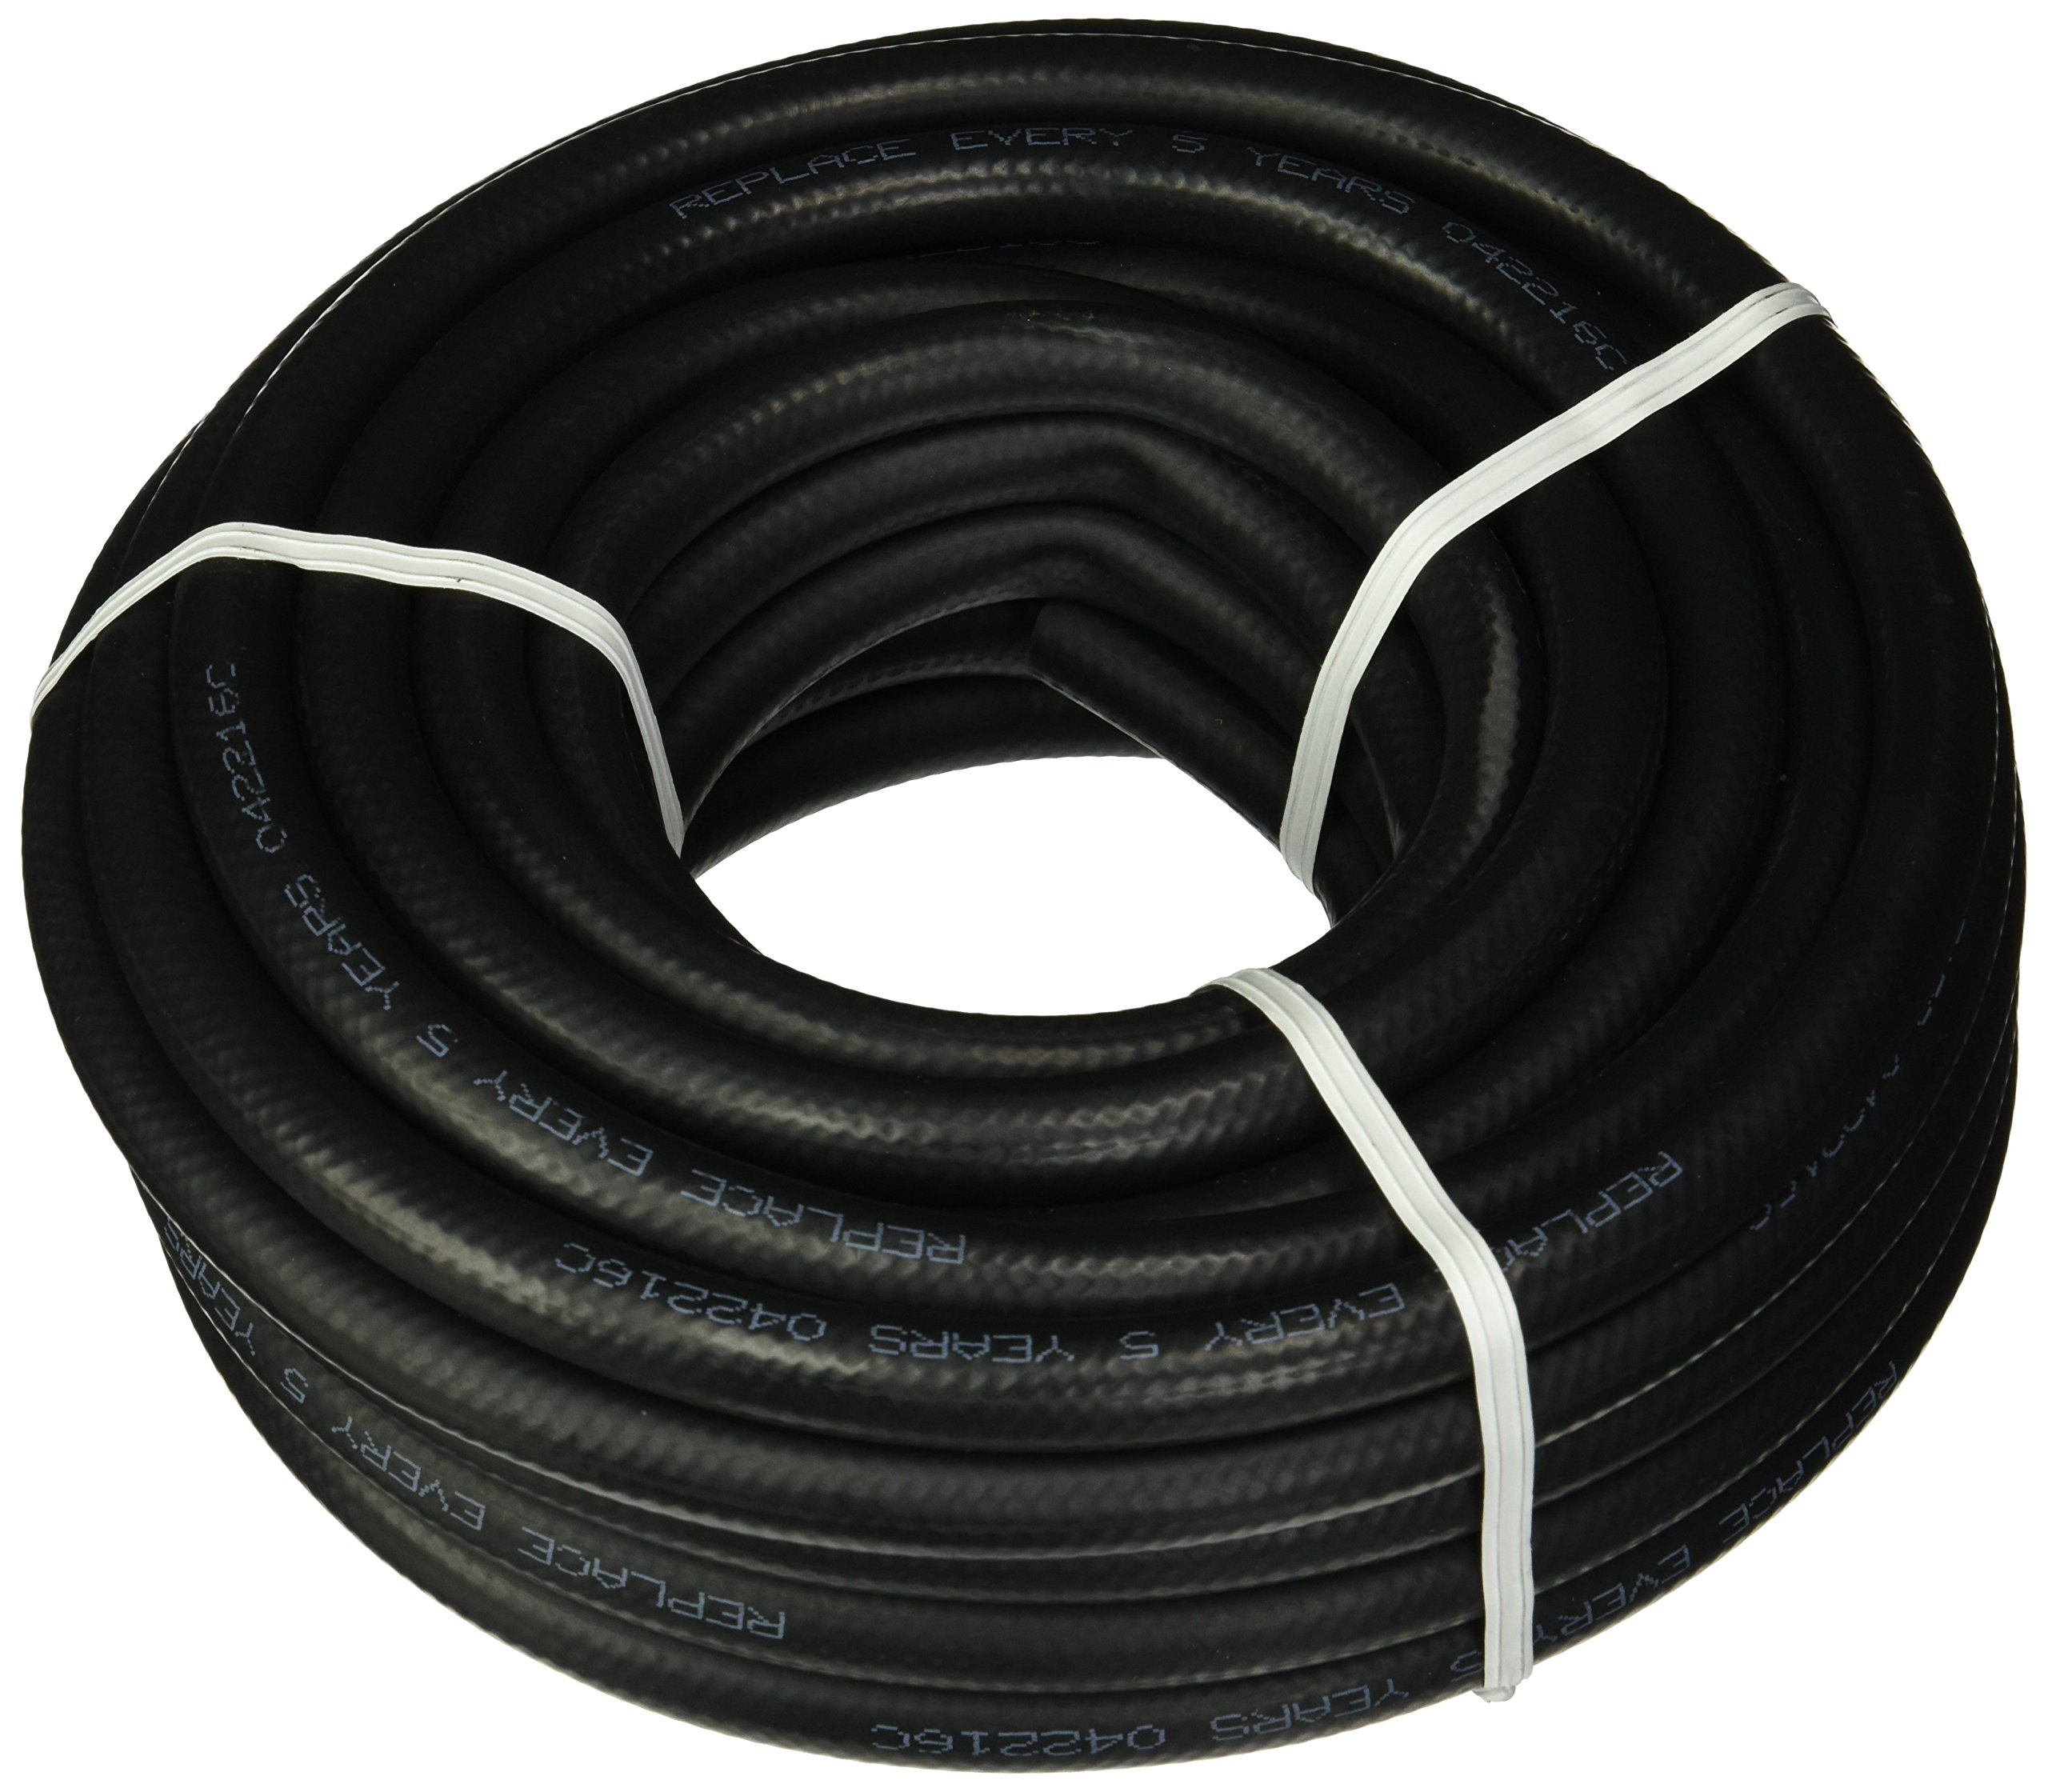 Abbott Rubber X1110-0381-50 EPDM Rubber Agricultural Spray Hose, 3/8-Inch ID by 50-Feet by Abbott Rubber